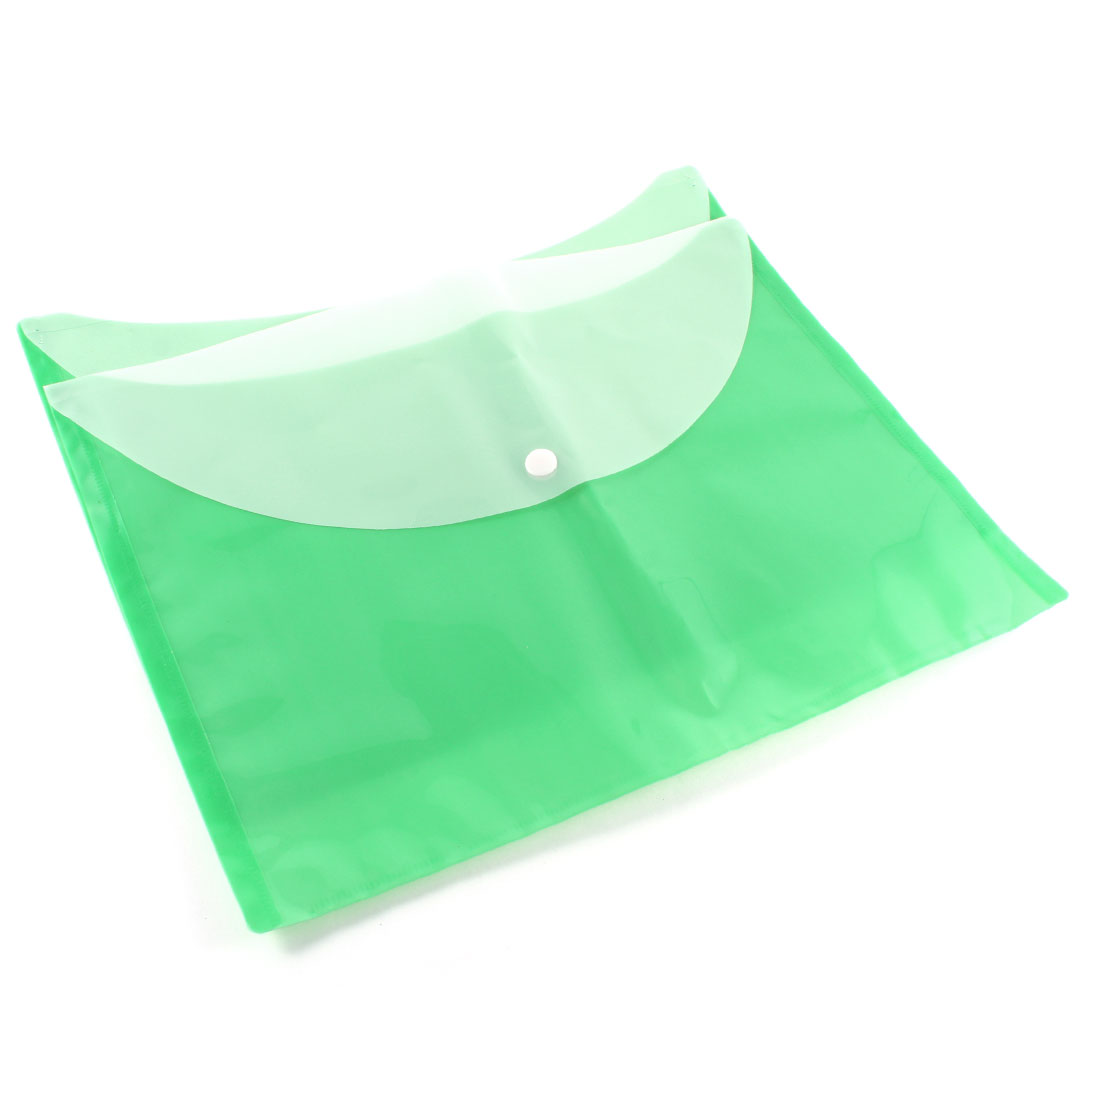 2 Pcs Green Plastic A4 Paper Document Filing File Case Bag Folder Holder